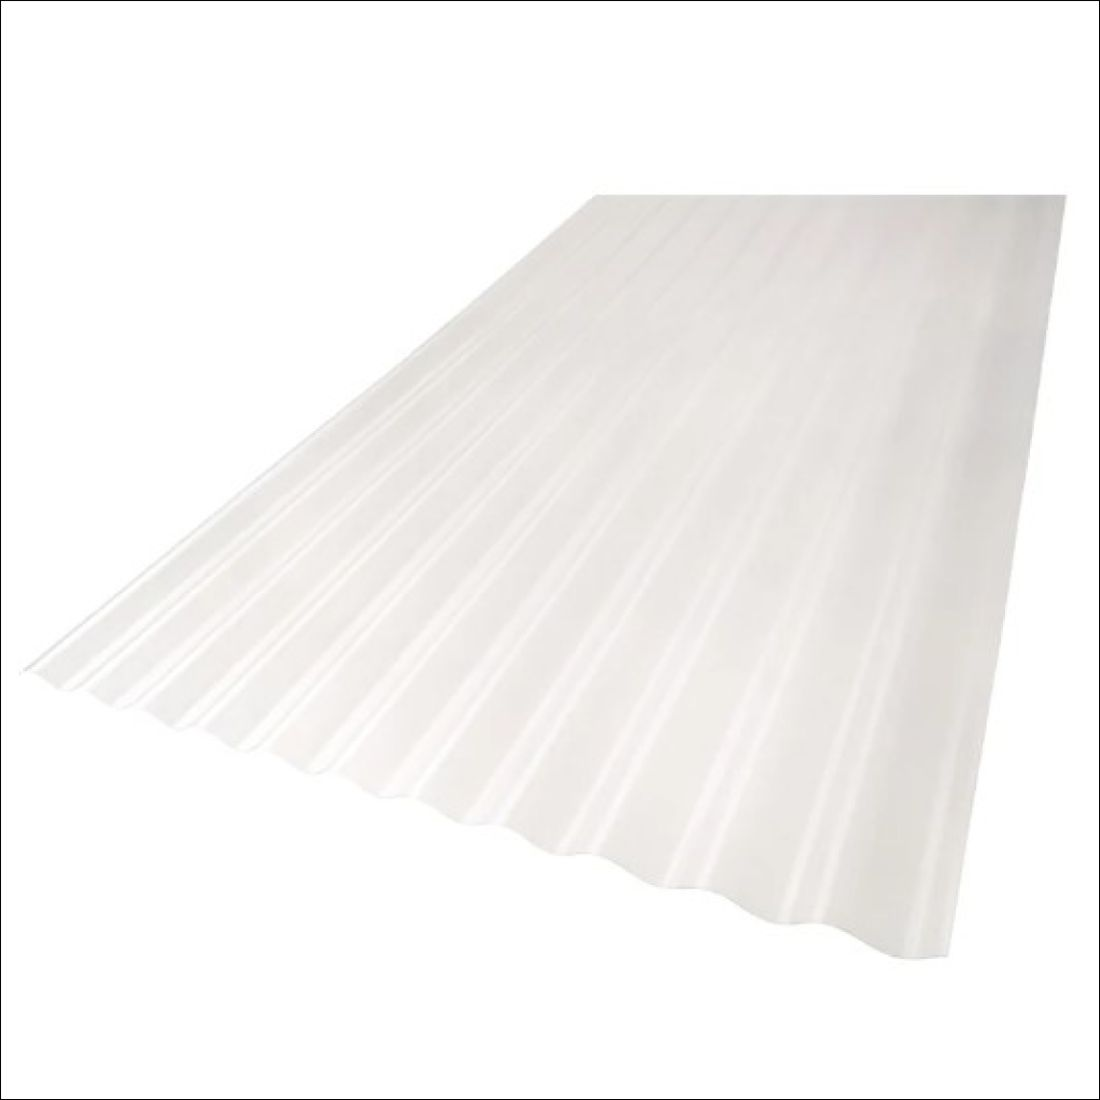 Tufclad Ultra Polycarbonate Clear Corrugated 6000 x 860mm